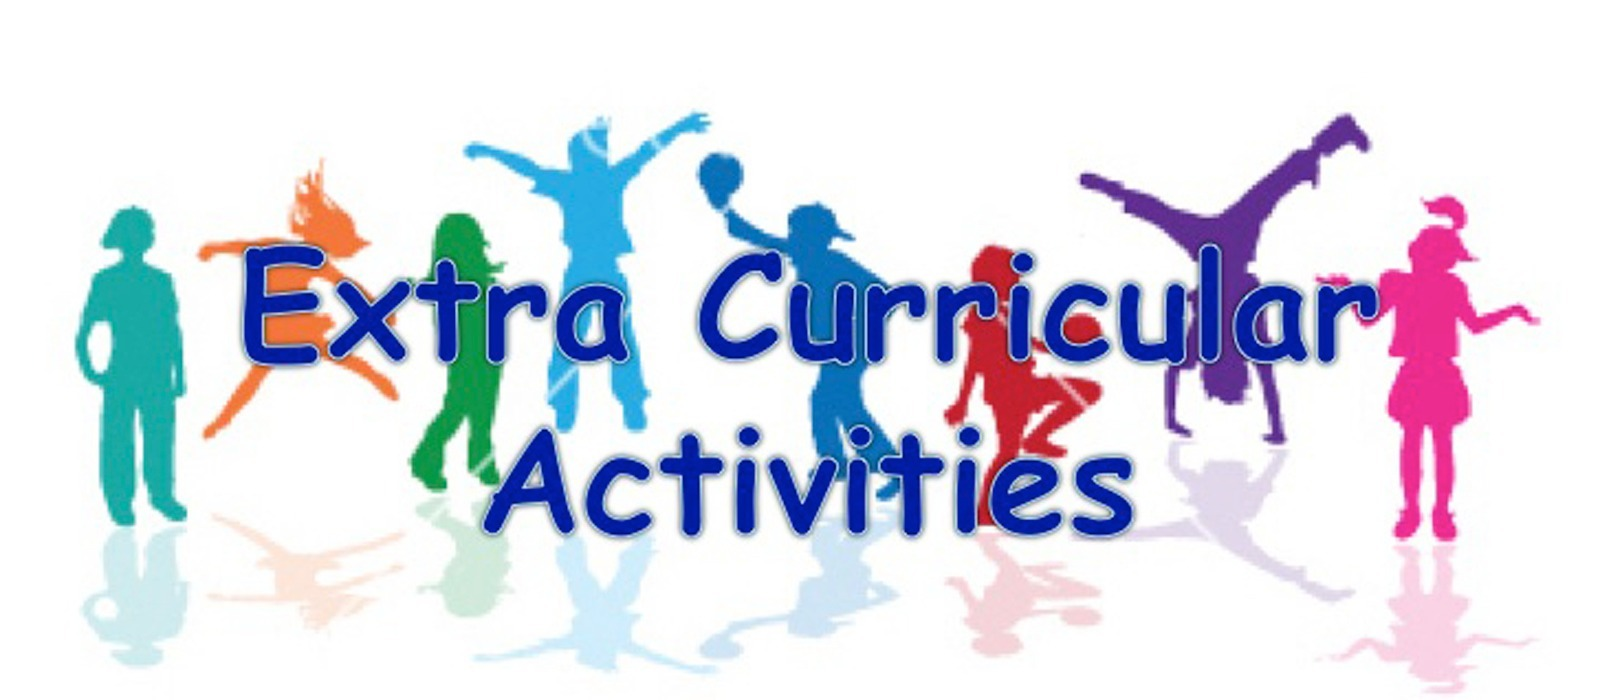 Supporting image for After School Activities, Friday 15th February